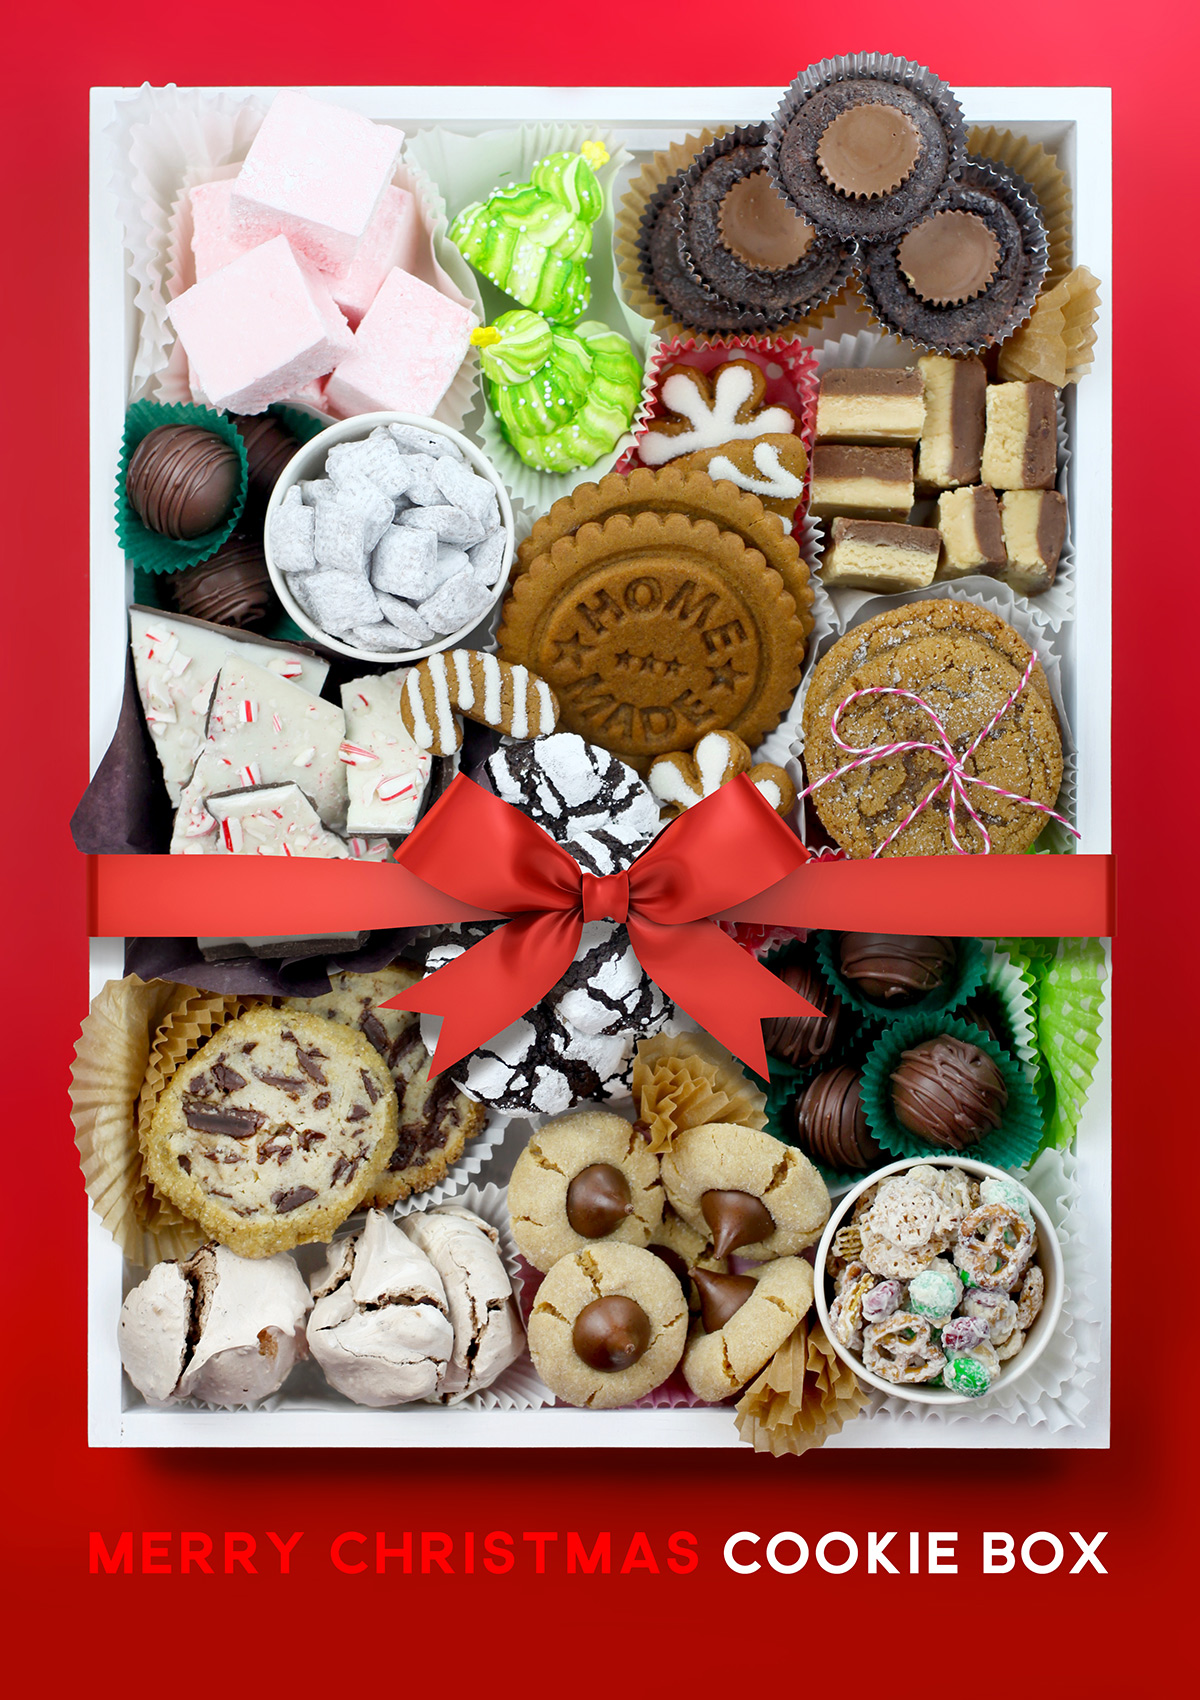 Merry Christmas Cookie Boxes